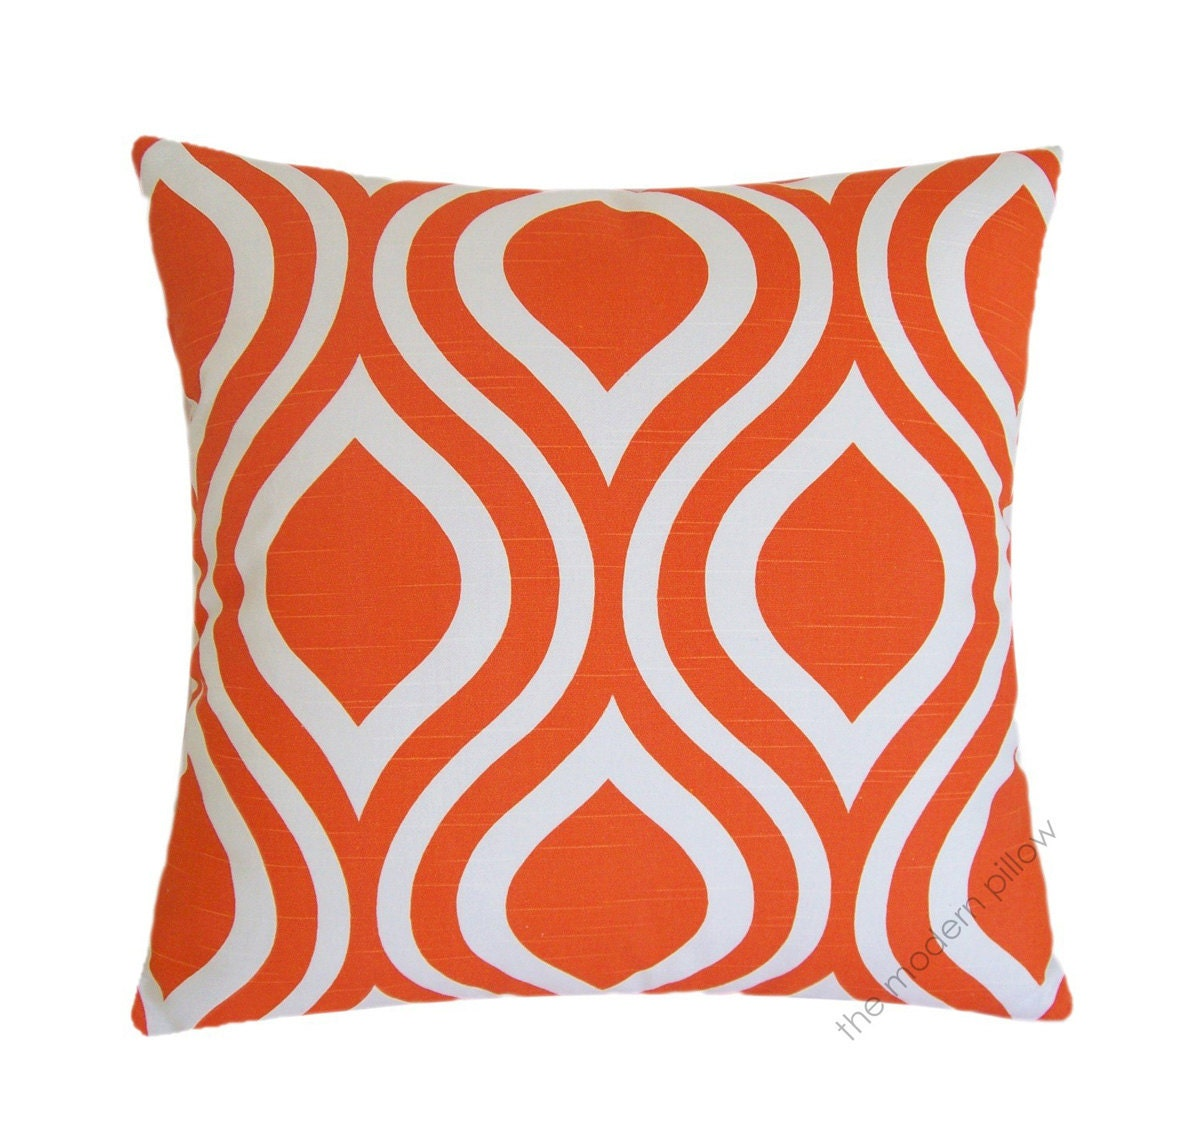 Orange And White Decorative Pillows : Orange and White Thistle Decorative Throw Pillow Cover